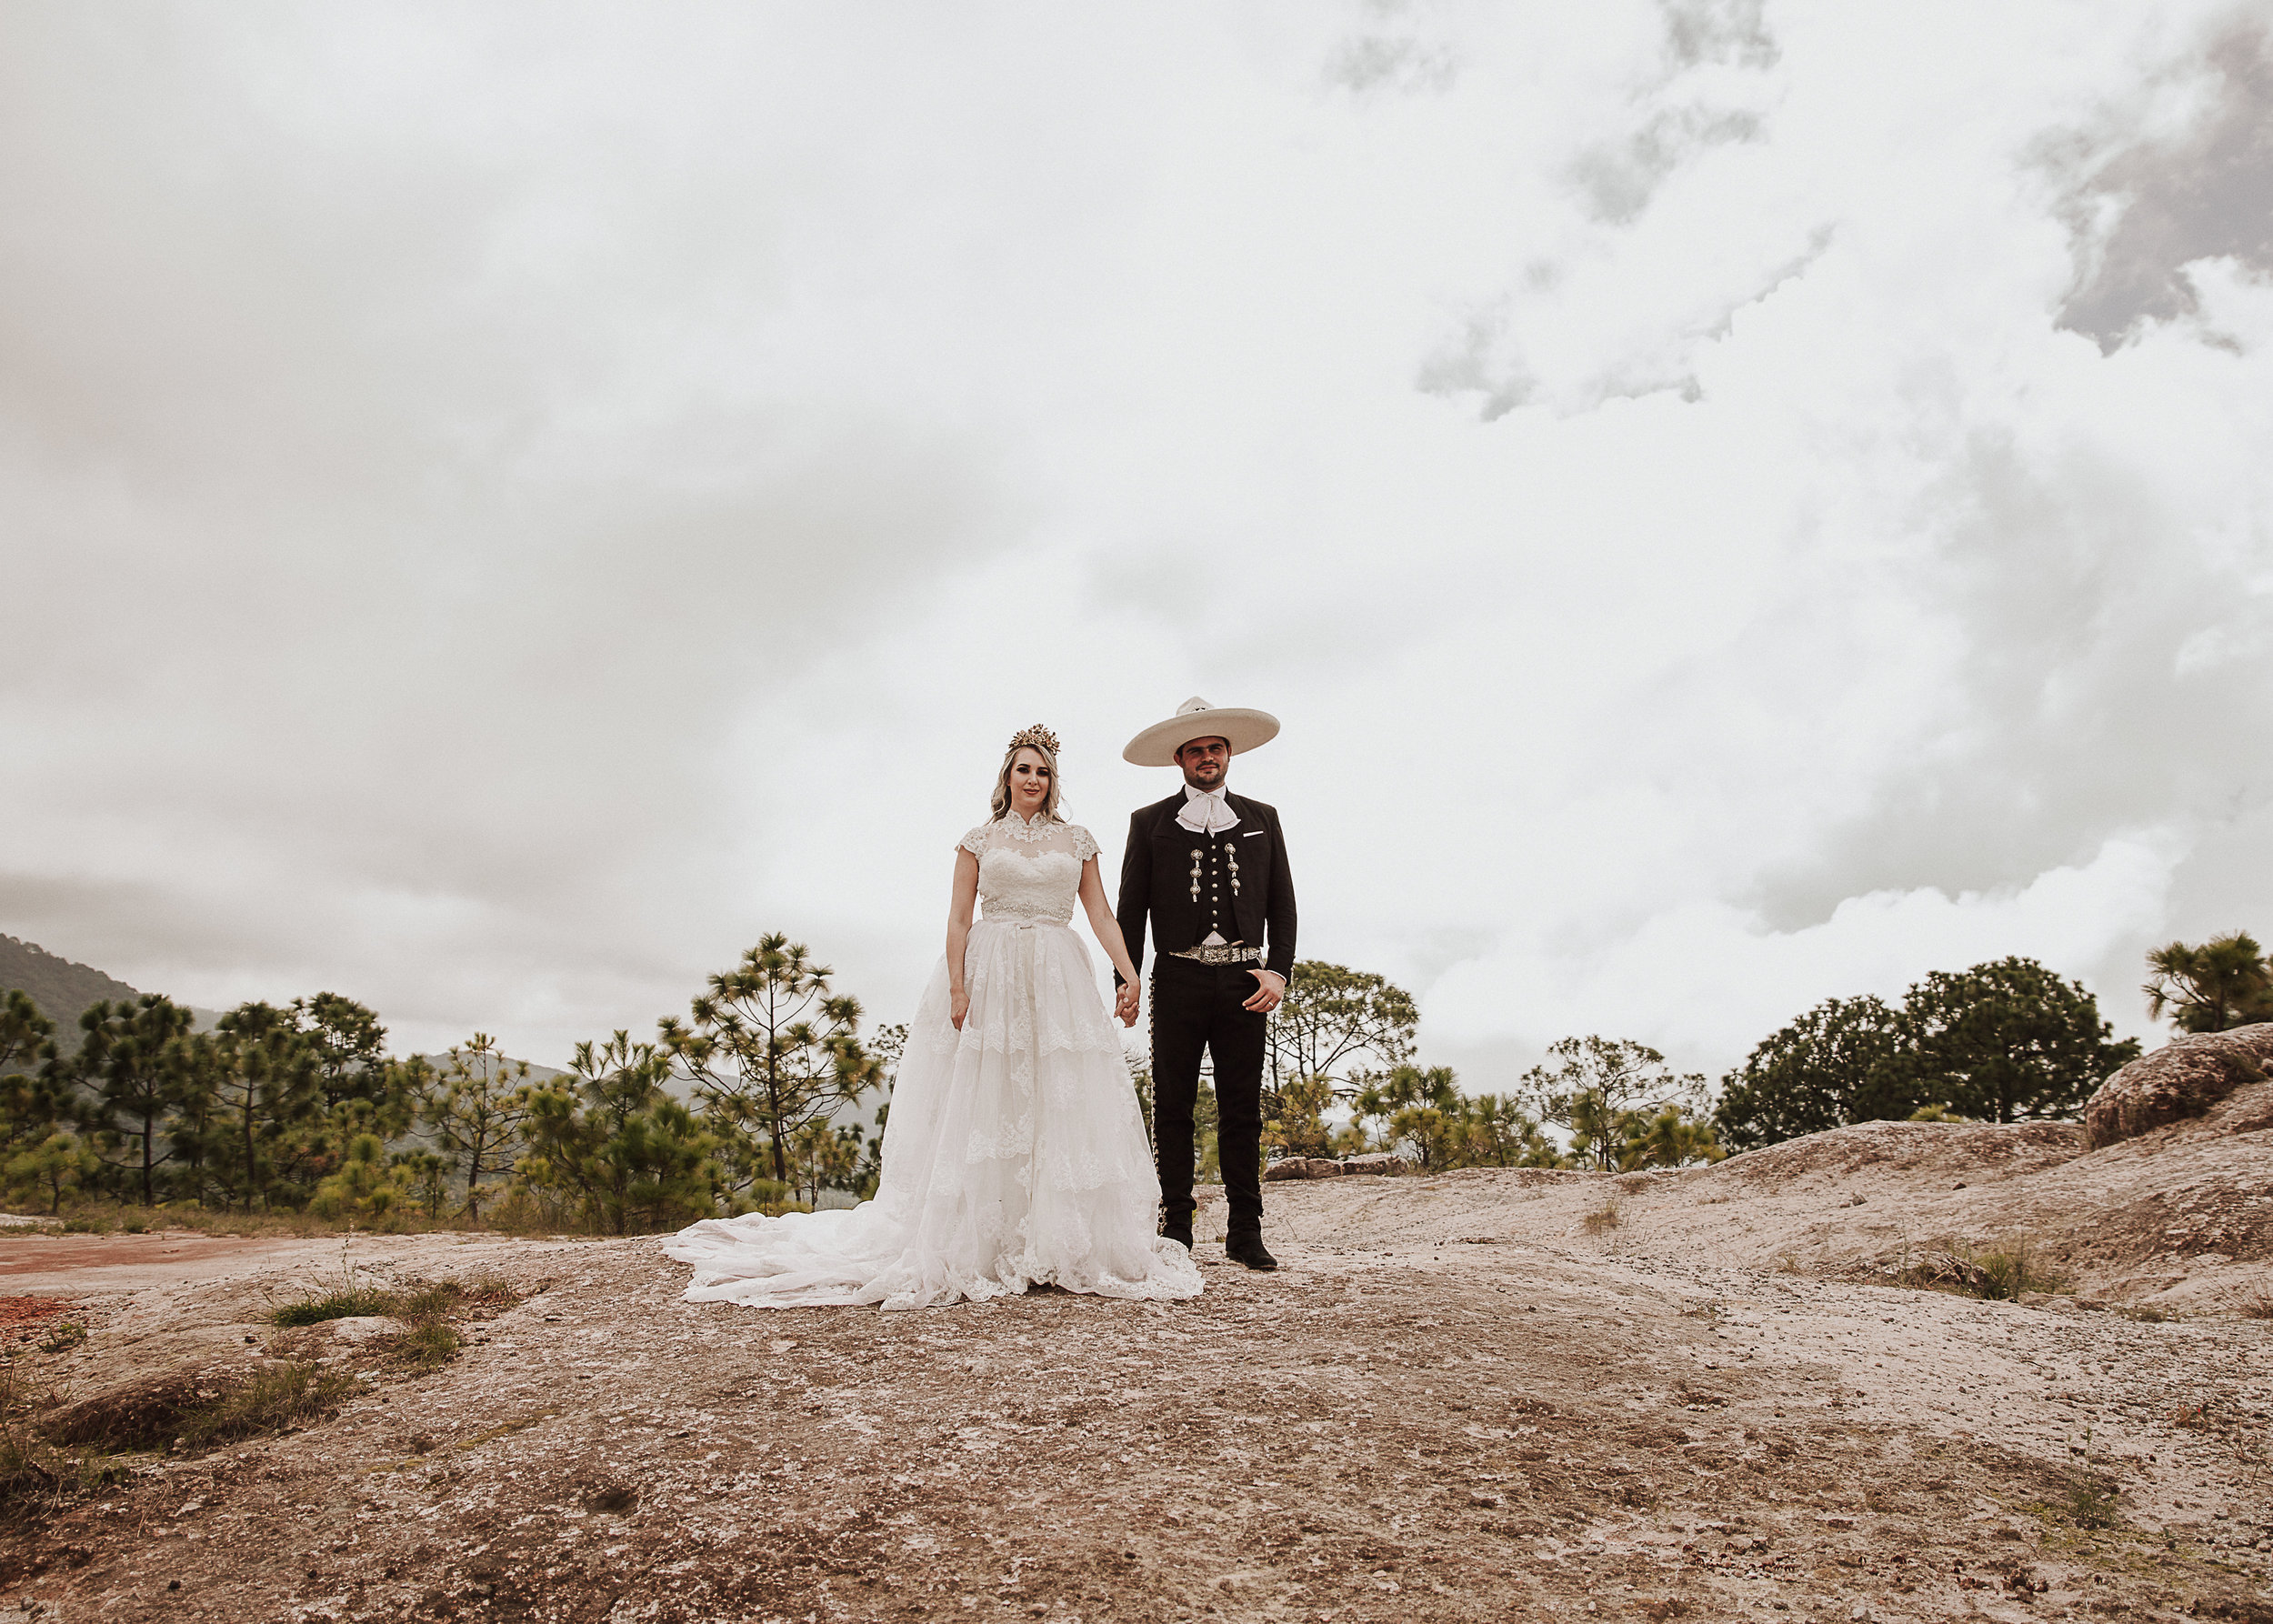 Fotografo-de-bodas-destino-Mexico-wedding-destination-photographer-san-miguel-de-allende-gto-guanajuato-queretaro-boho-bohemian-bohemio-chic-wedding-editorial-wedding